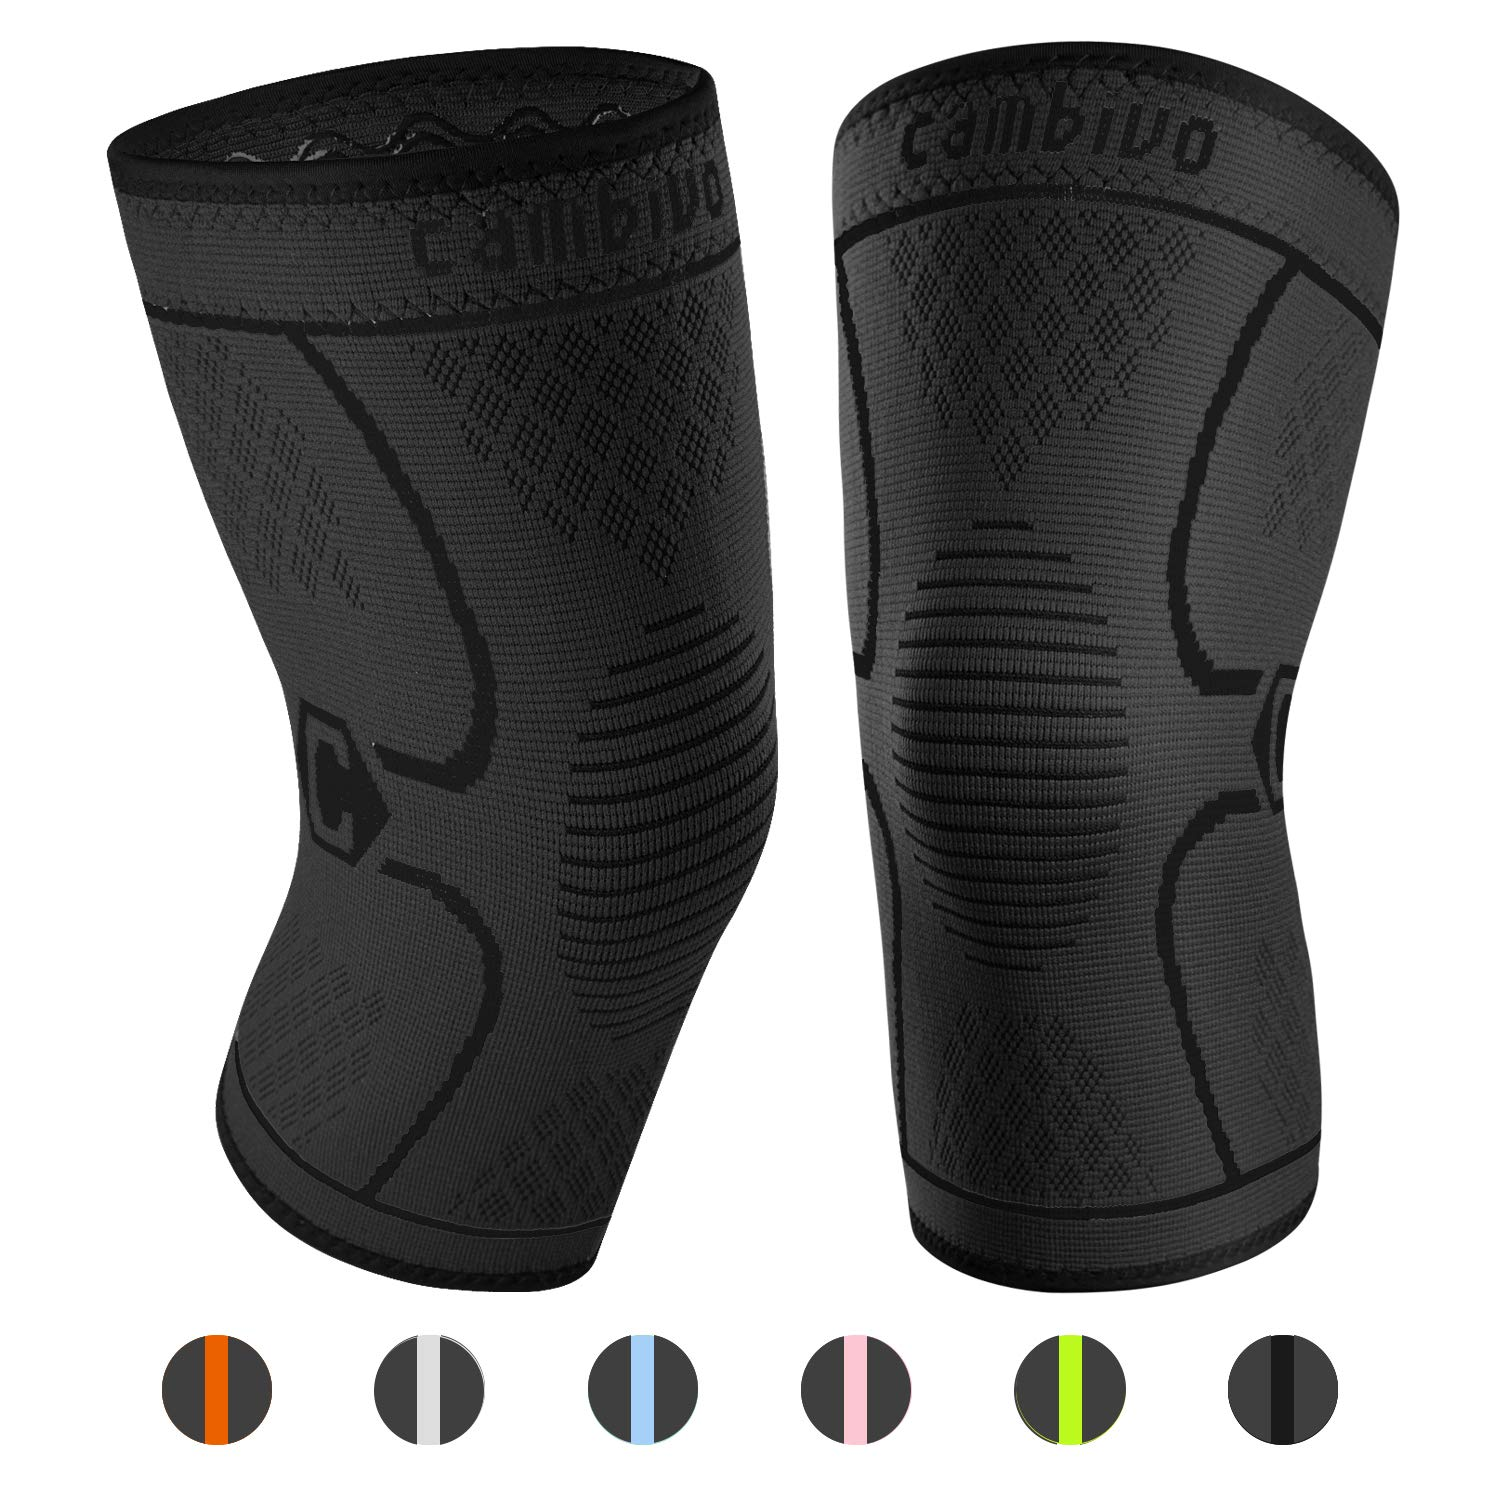 CAMBIVO 2 Pack Knee Brace, Knee Compression Sleeve Support for Running, Arthritis, ACL, Meniscus Tear, Sports, Joint Pain Relief and Injury Recovery (Small (14.5'' - 17''), Black/Black)